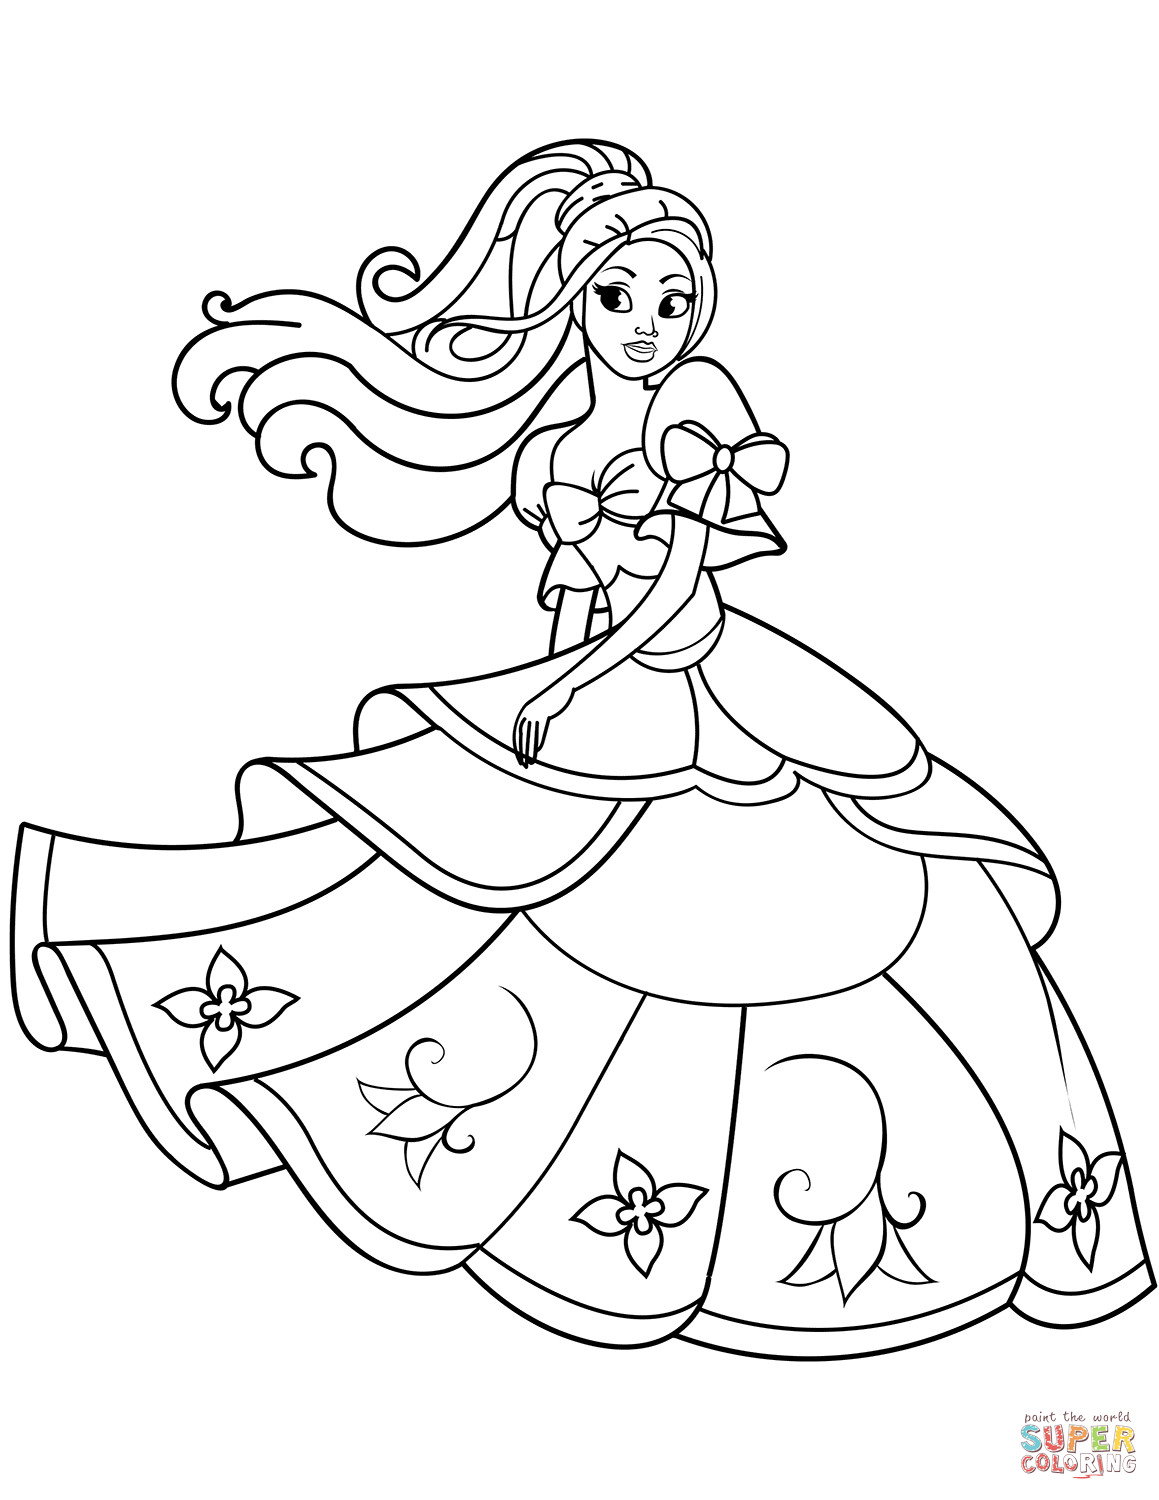 Best ideas about Printable Coloring Pages Princess . Save or Pin Dancing Princess coloring page Now.